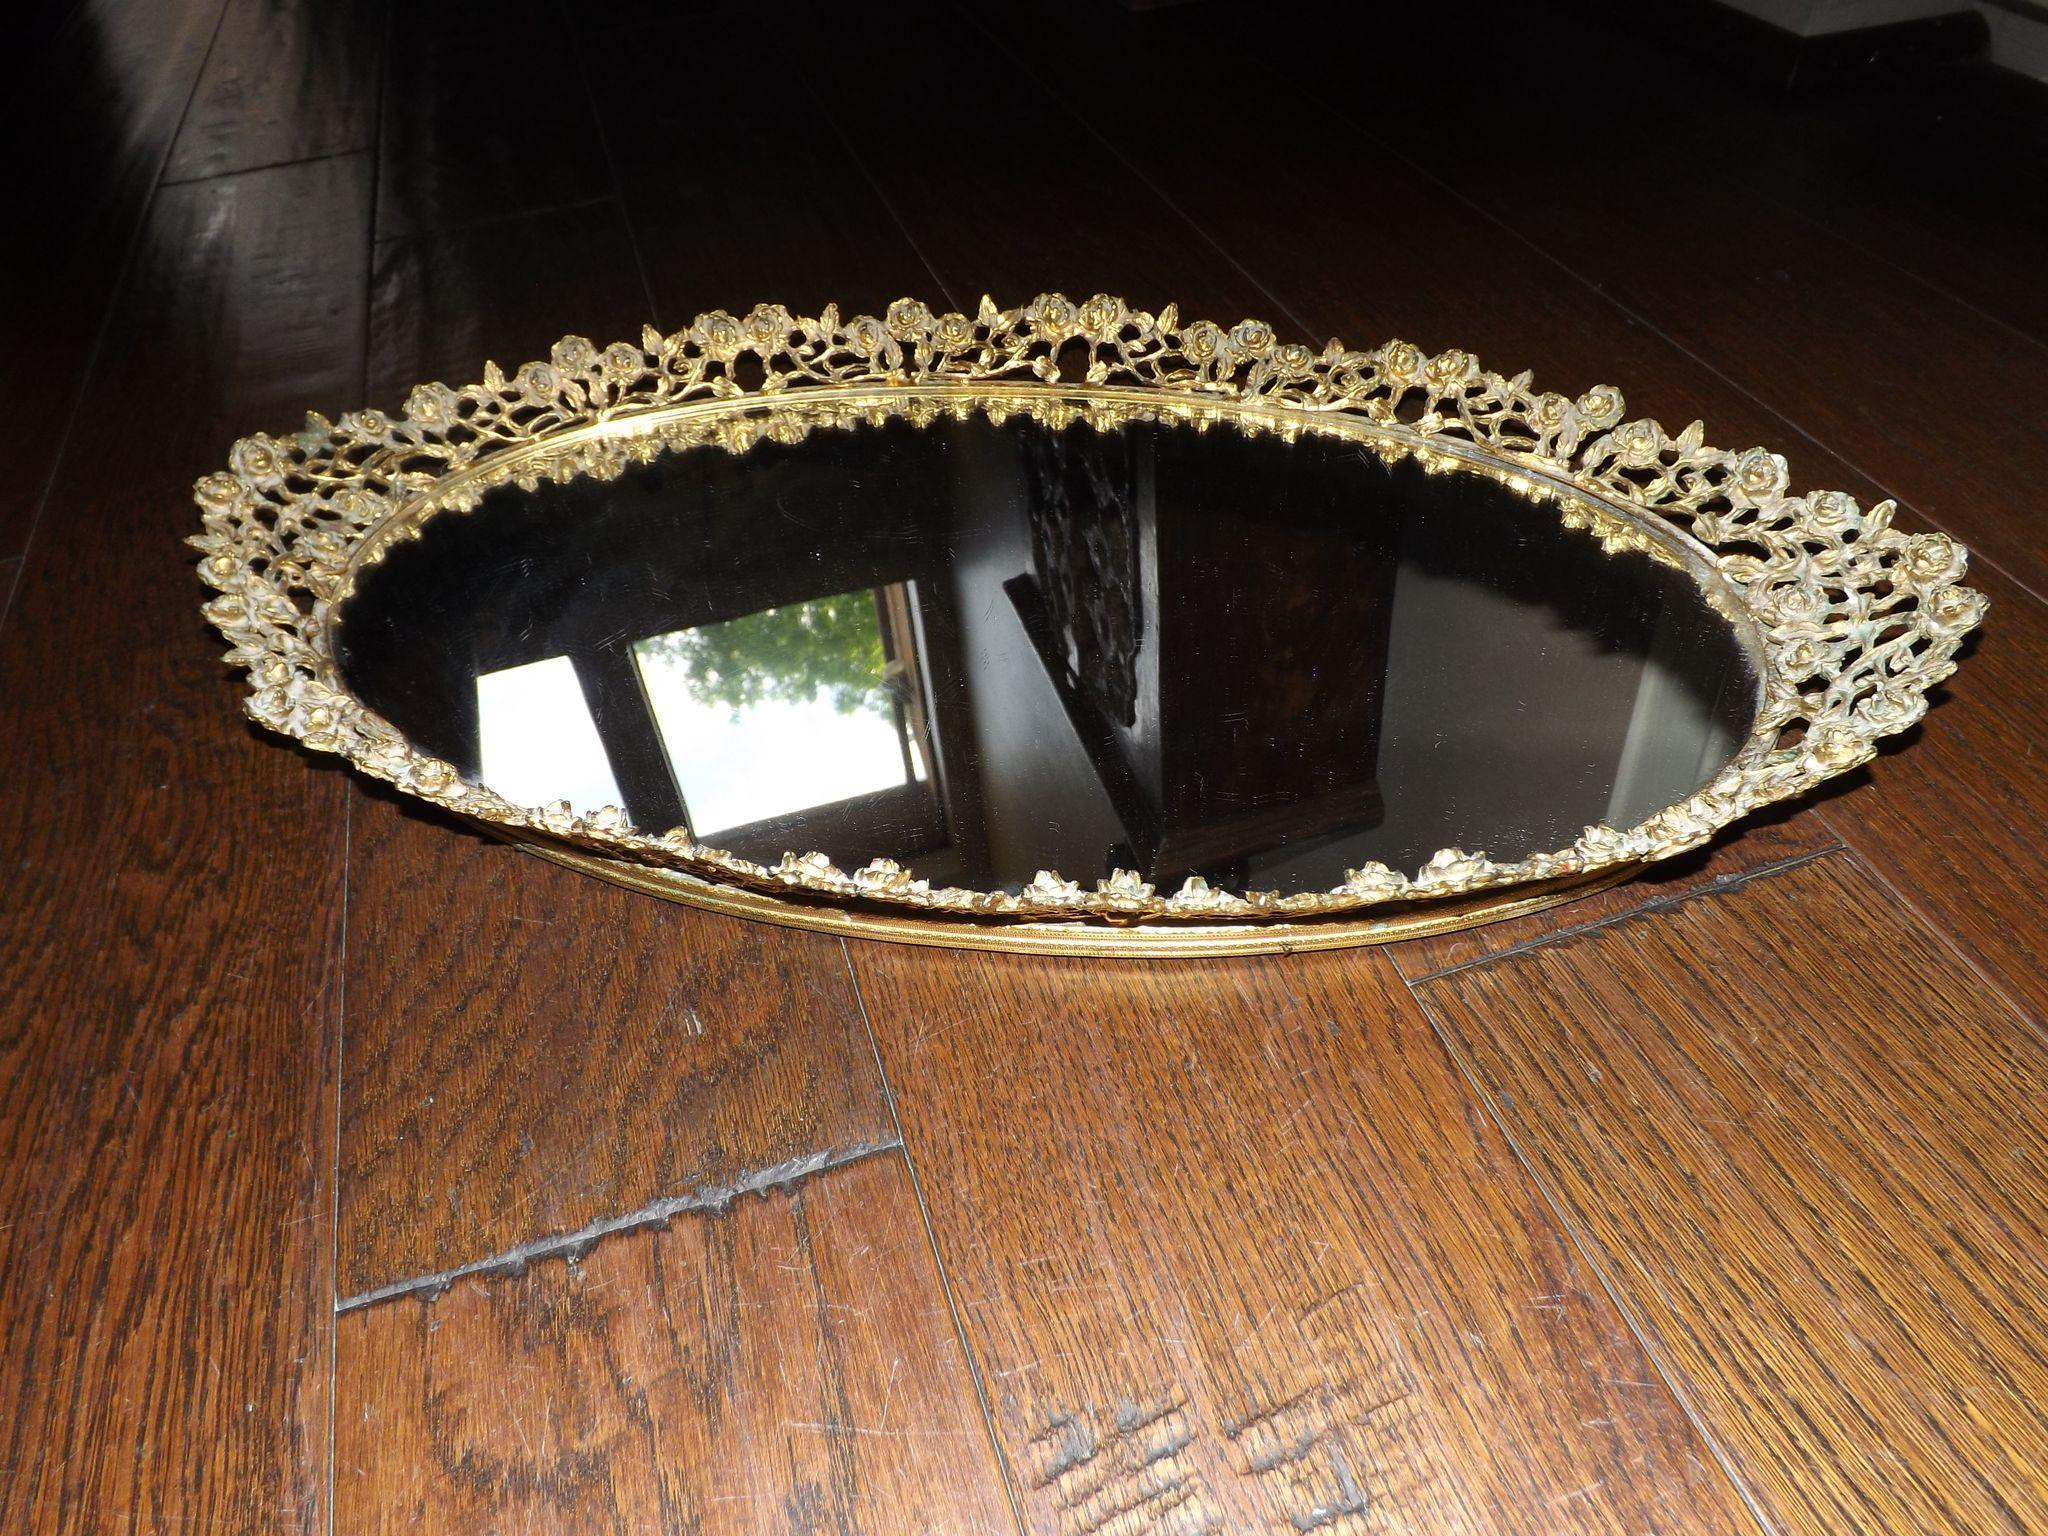 Vintage Oval Mirror Vanity Tray with Roses